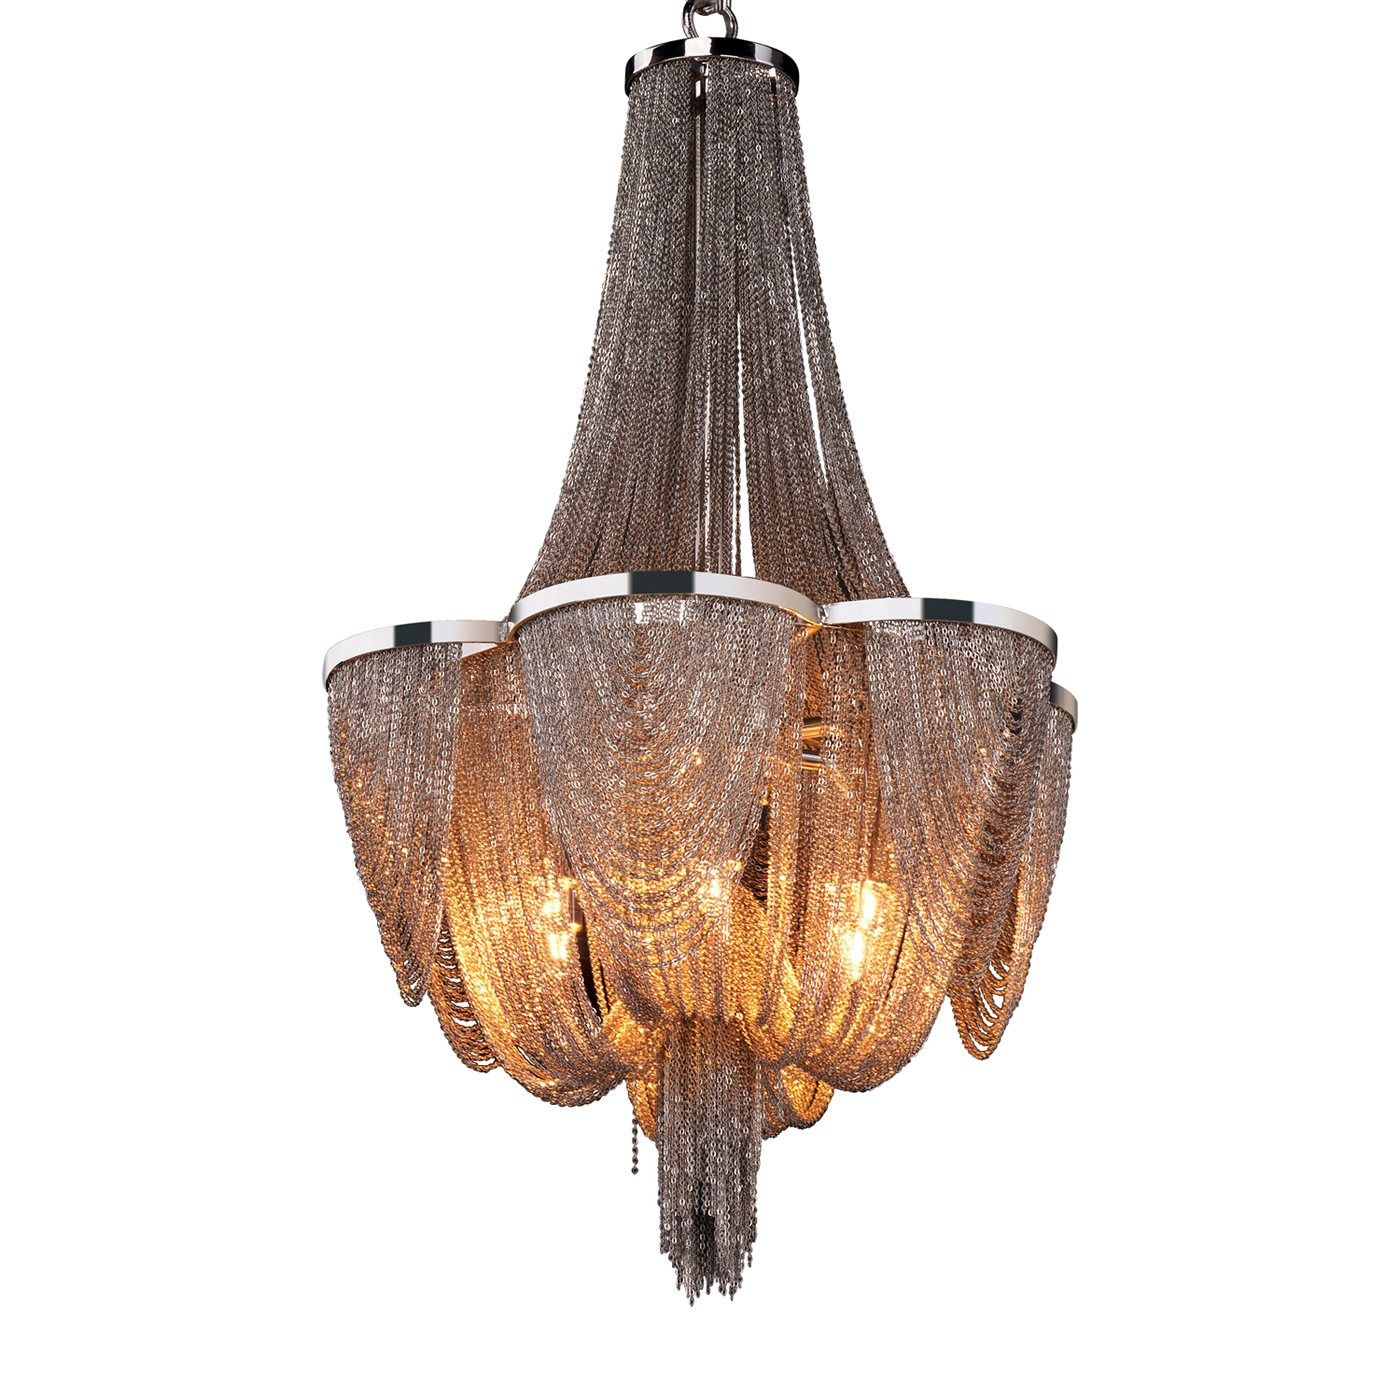 Maxim Lighting 21464 Chantilly 6-Light Chandelier - Lighting Universe  Width 14 inches   Height 22 inches   Weight 11.66lbs   790.00